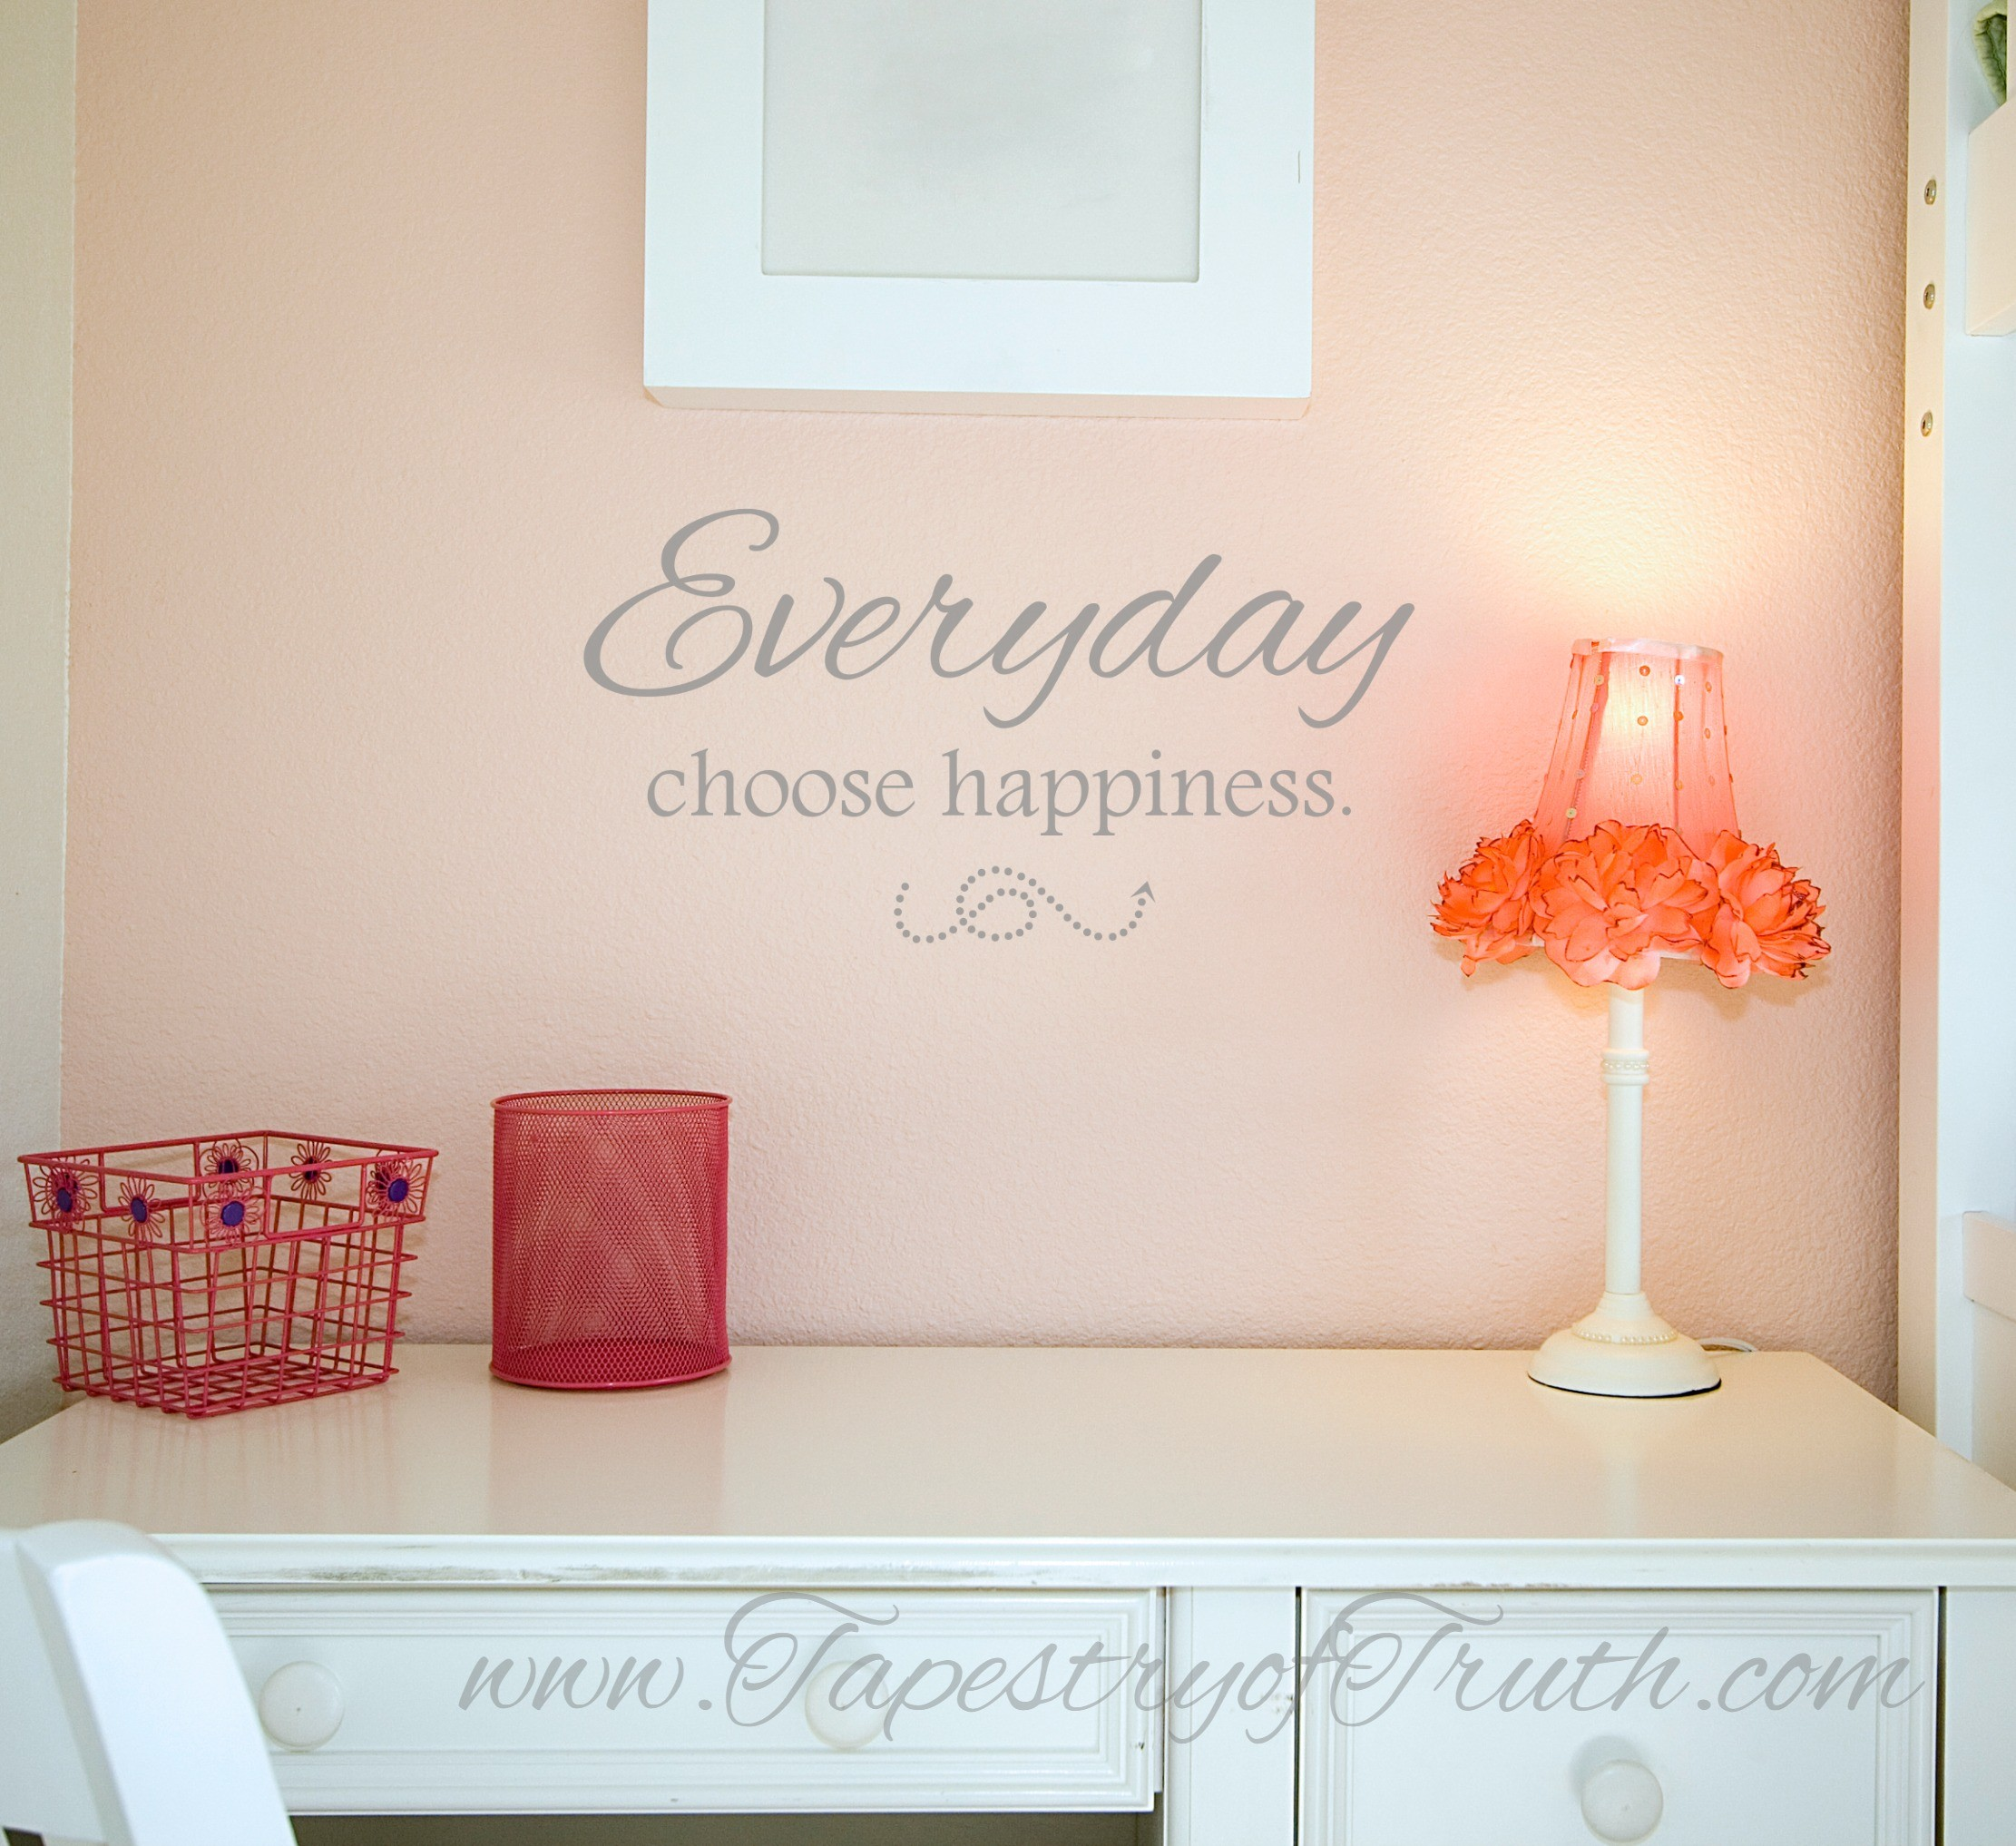 Everyday choose happiness.